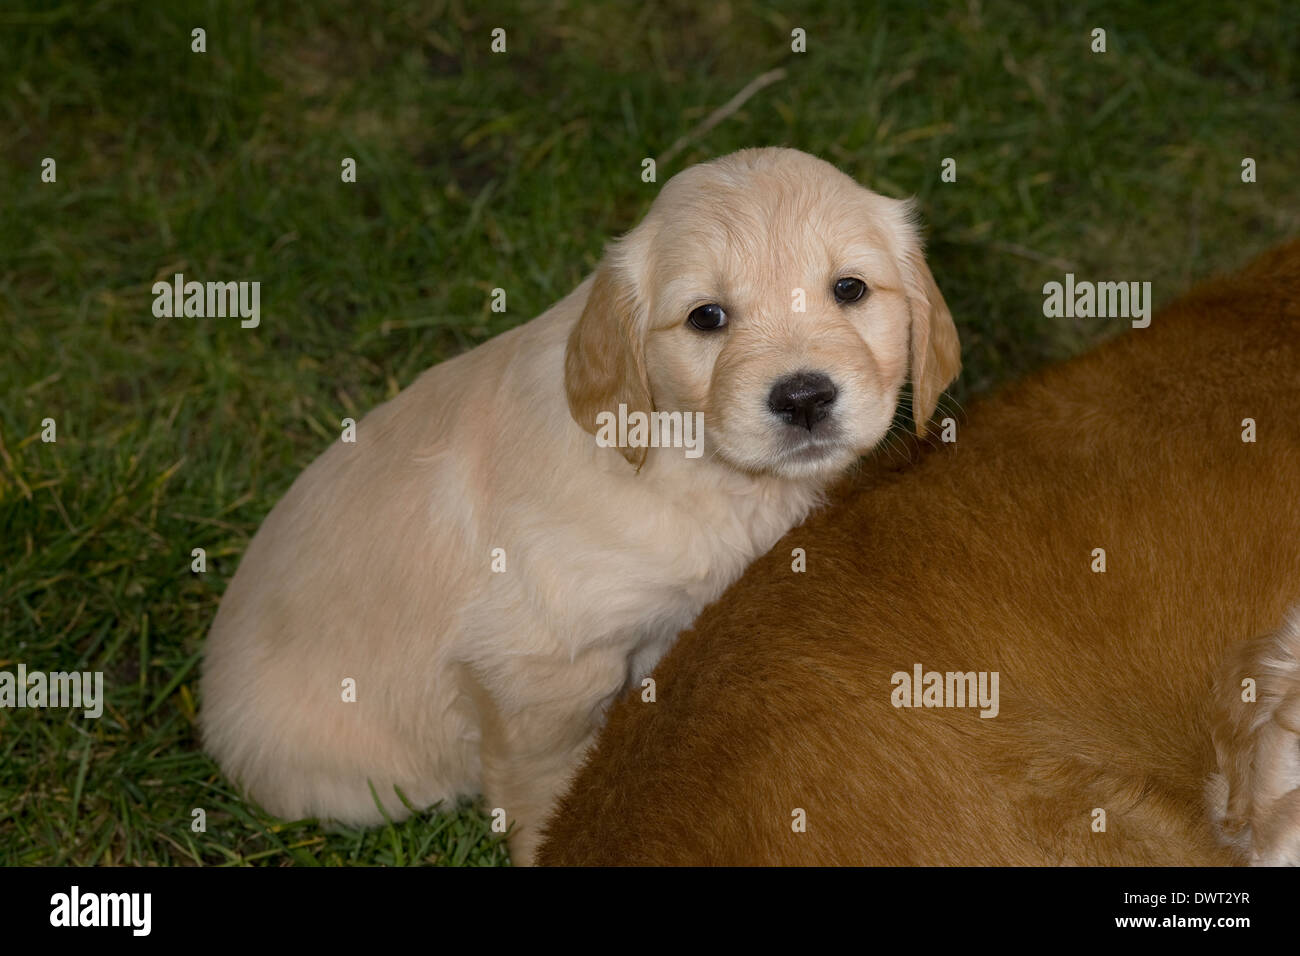 golden retriever female puppy week stockfotos golden retriever female puppy week bilder alamy. Black Bedroom Furniture Sets. Home Design Ideas